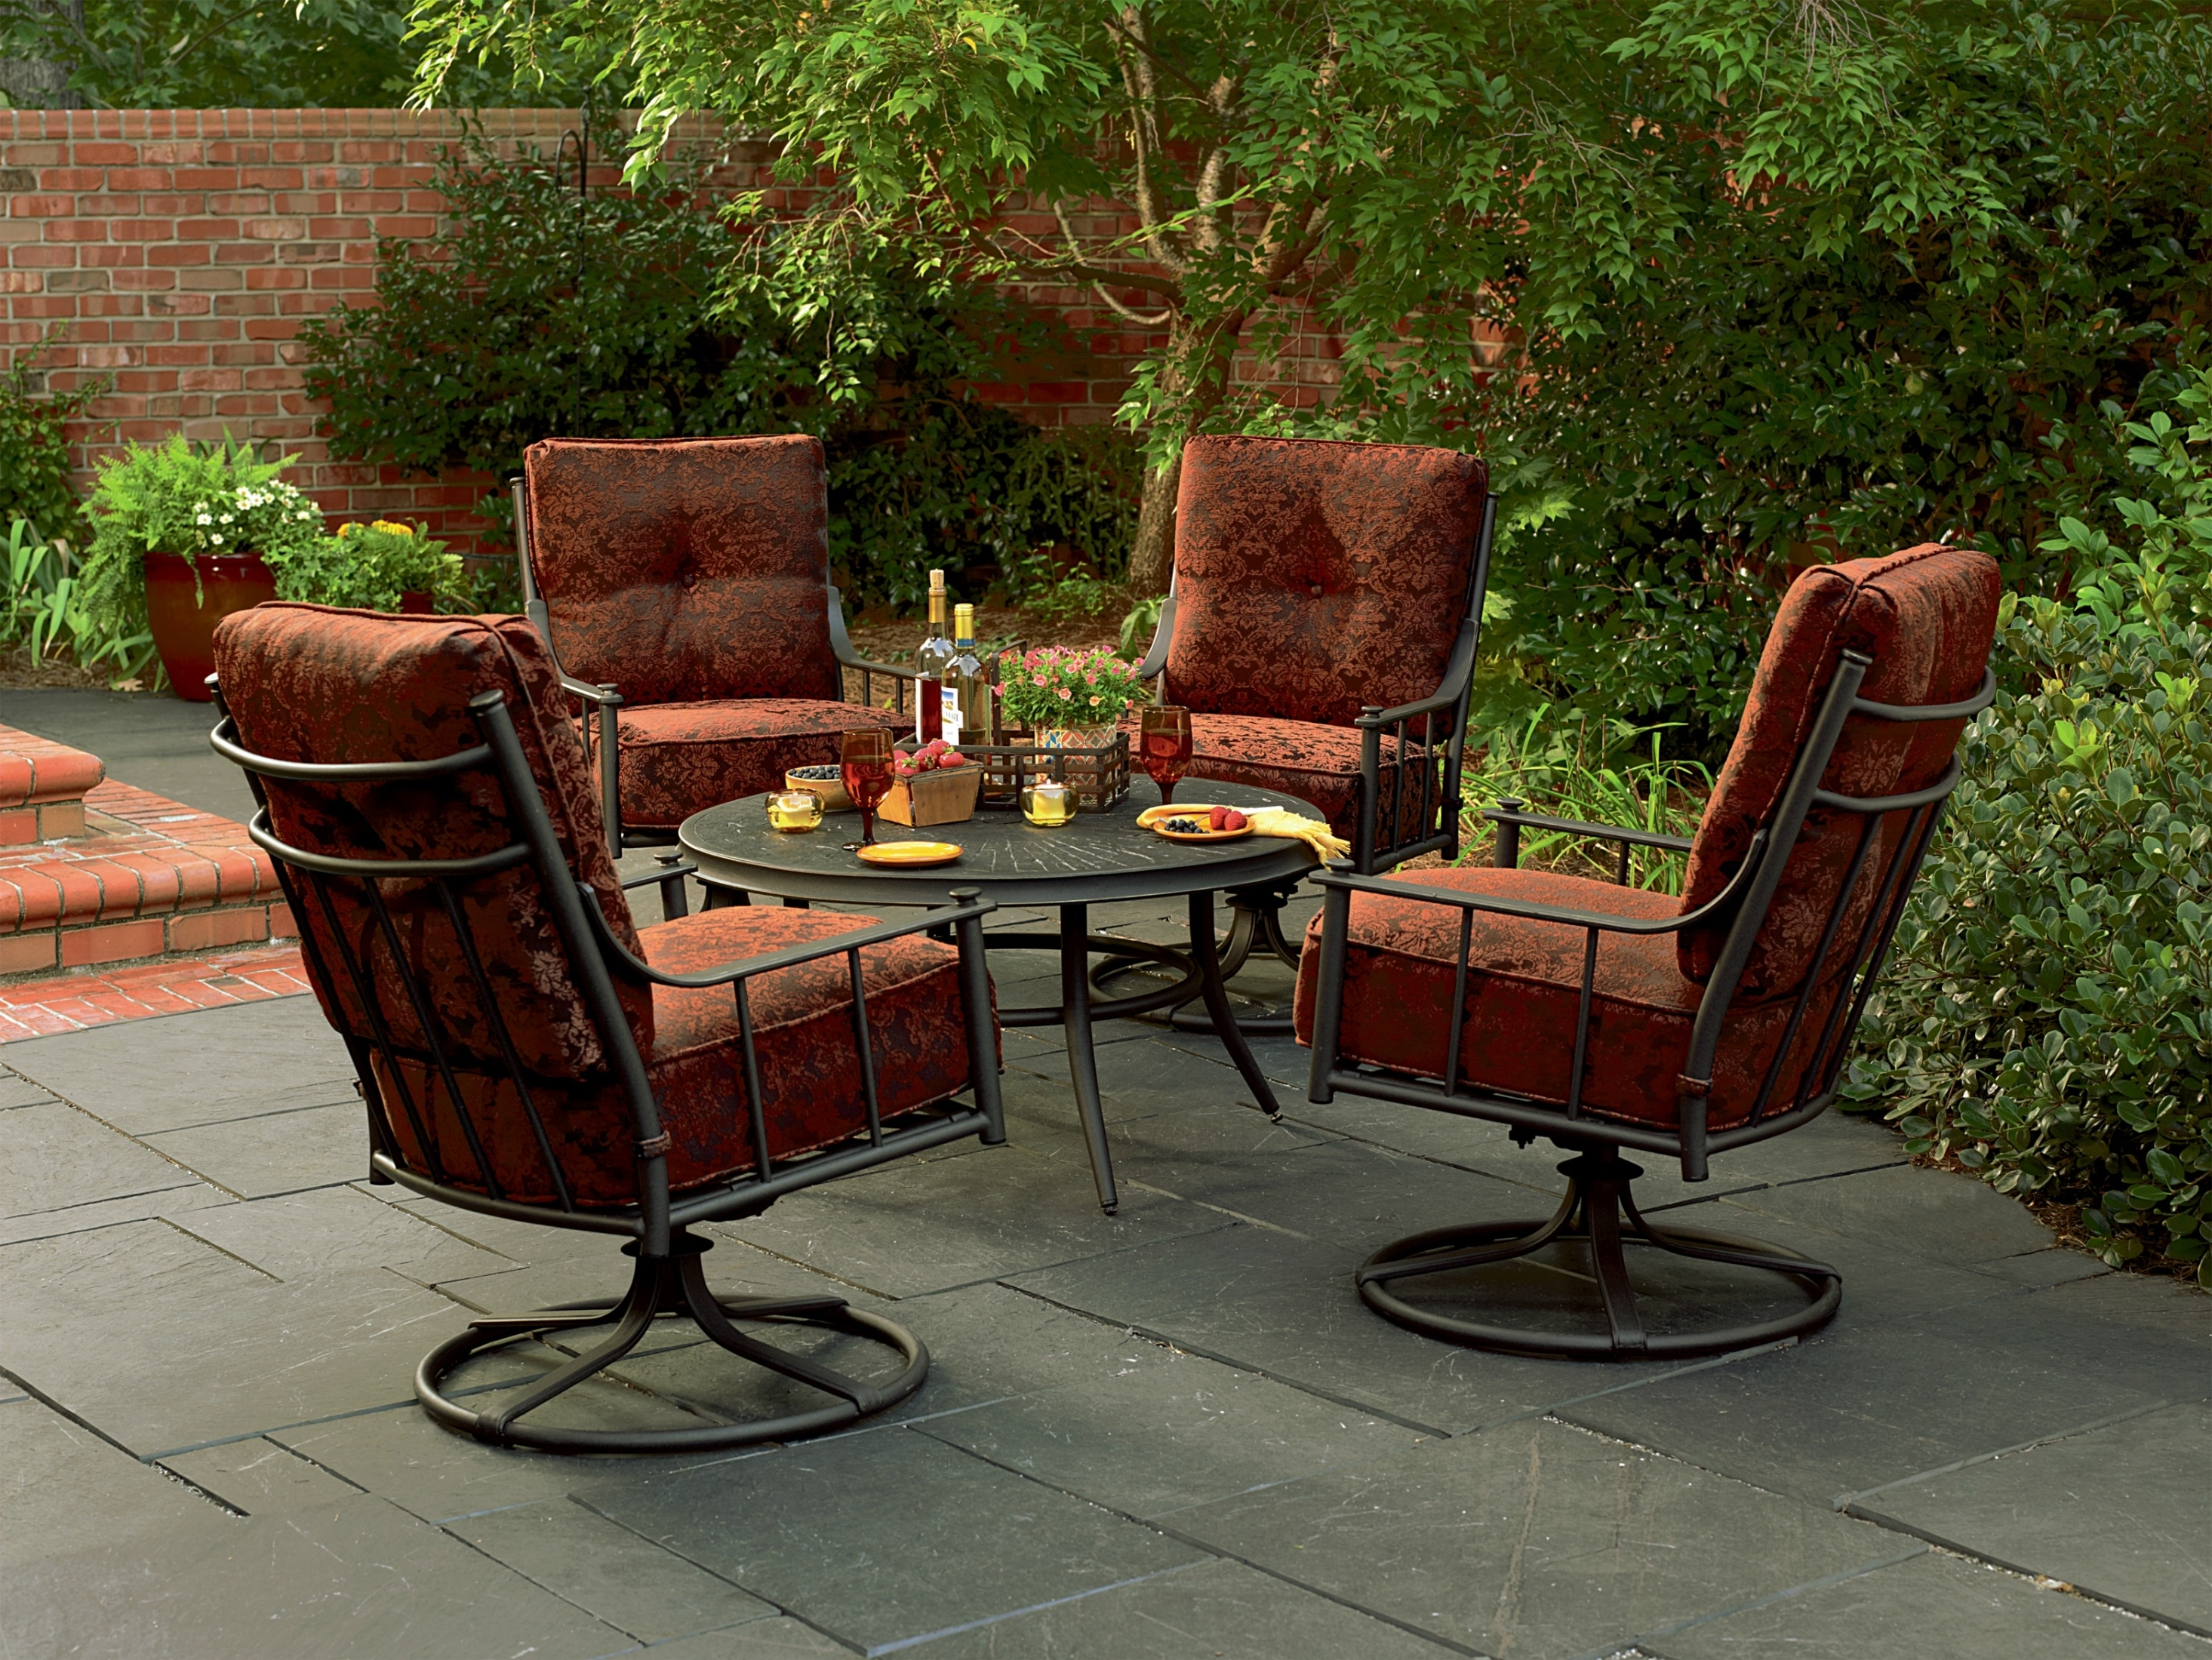 Patio Table: Sears Fire Pit Awesome Patio Ideas Patio Furniture Sets With Regard To Most Up To Date Sears Patio Furniture Conversation Sets (View 7 of 20)